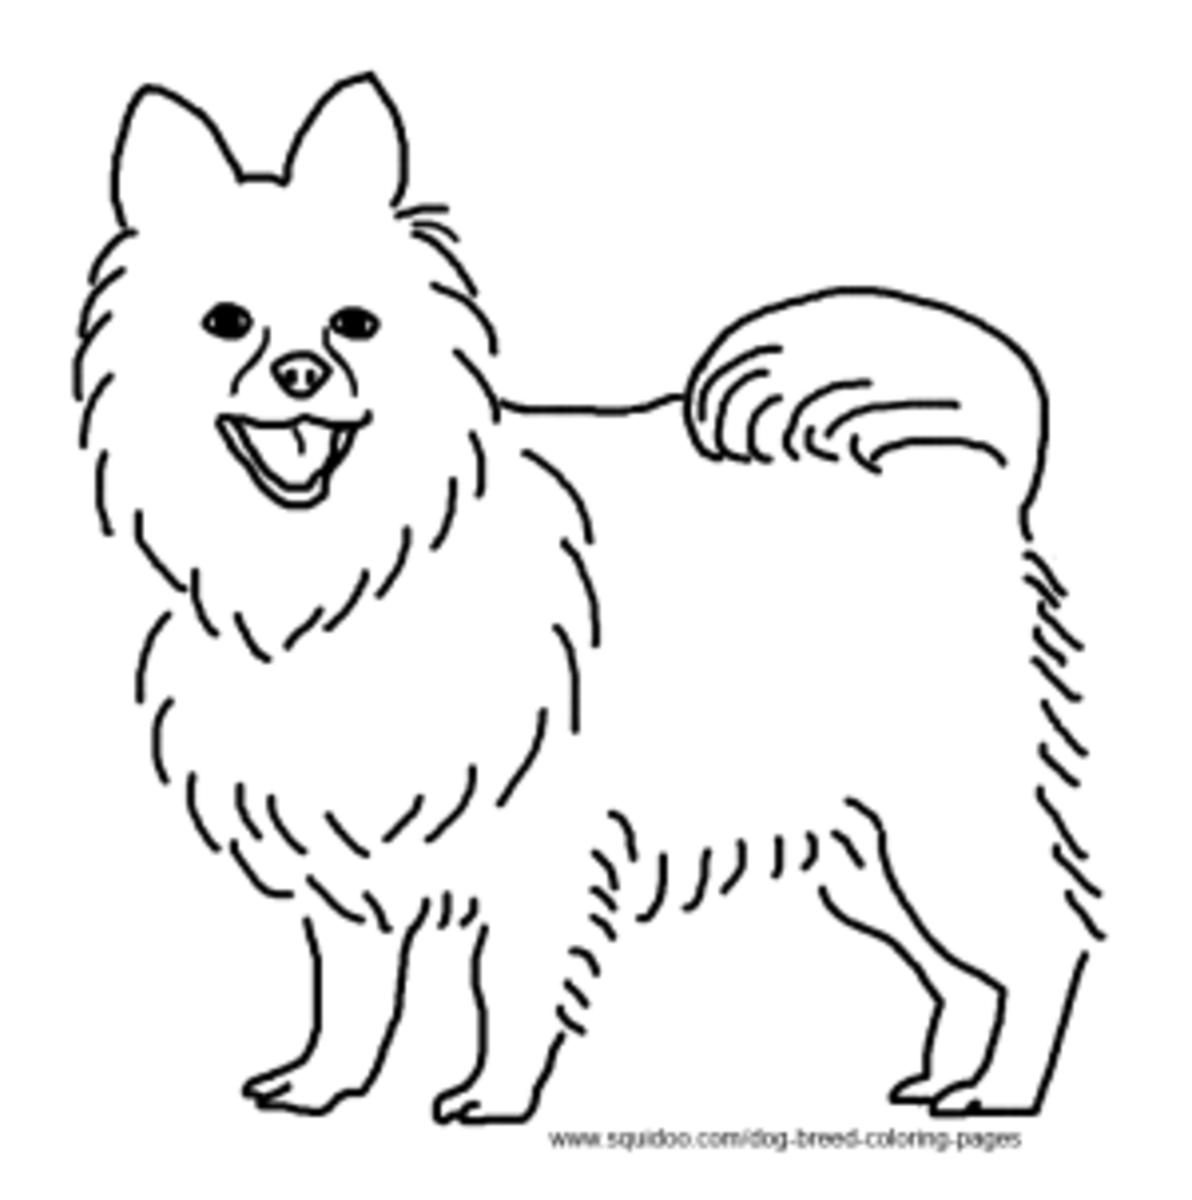 Dog Breed Coloring Pages | HubPages